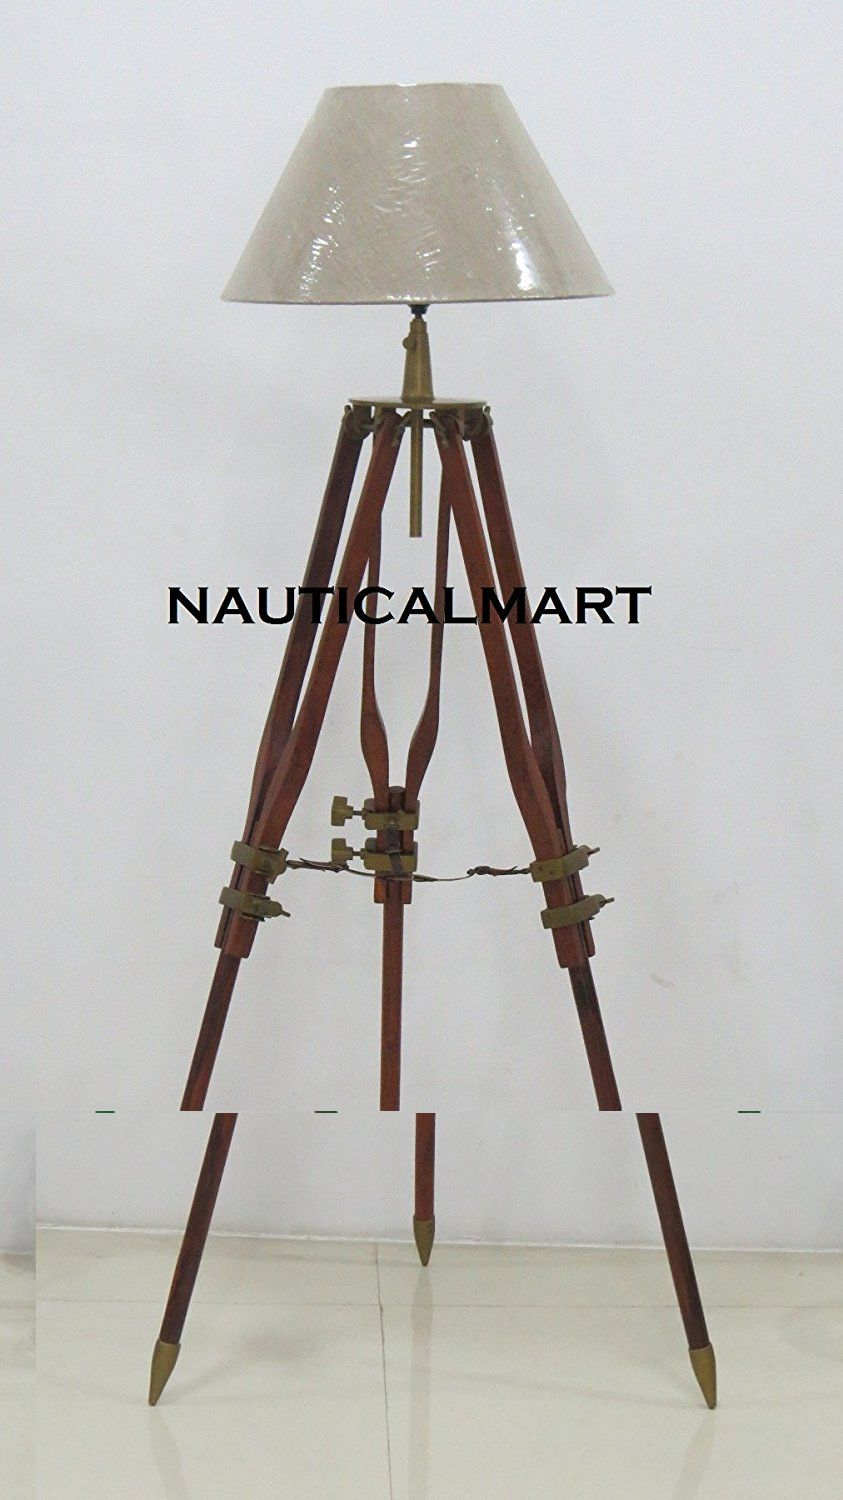 Vintage royal marine tripod floor lamp christmas gift by vintage royal marine tripod floor lamp christmas gift by nauticalmart amazon aloadofball Gallery